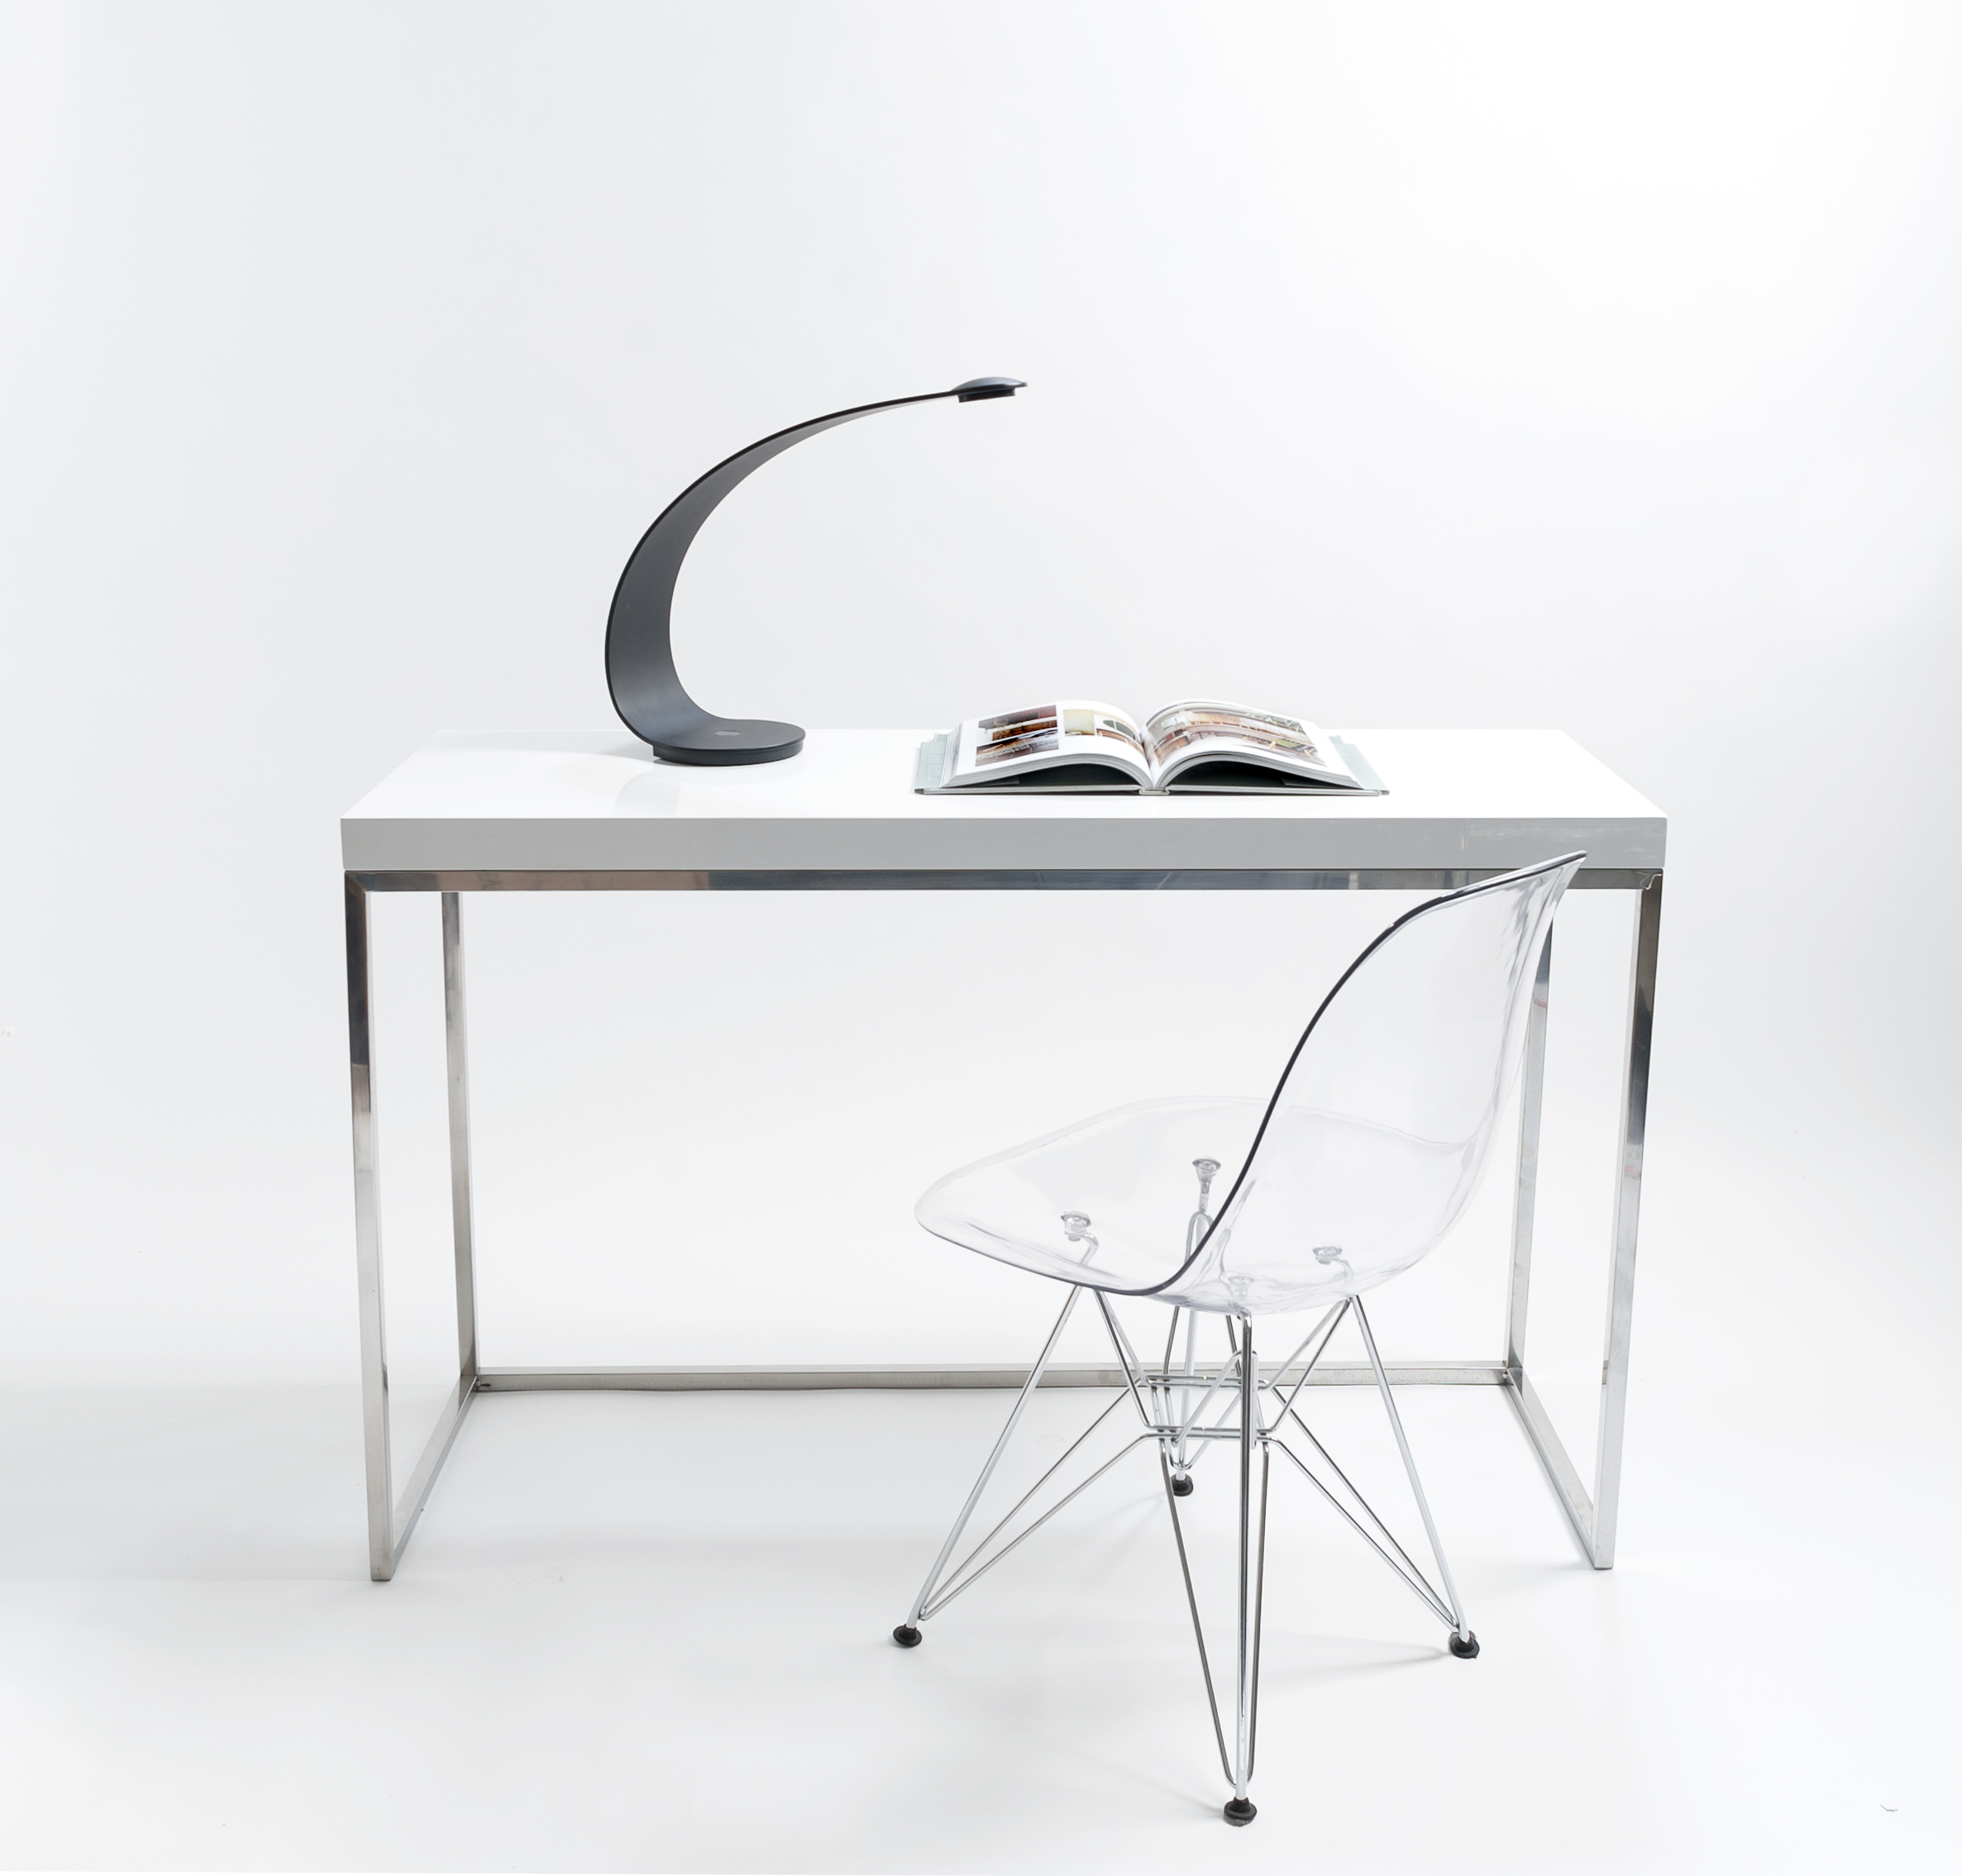 5 Modern Consoles To Enliven Your Space Modern Home : table23 from victoria.modernhomemag.ca size 2373 x 2269 jpeg 1012kB